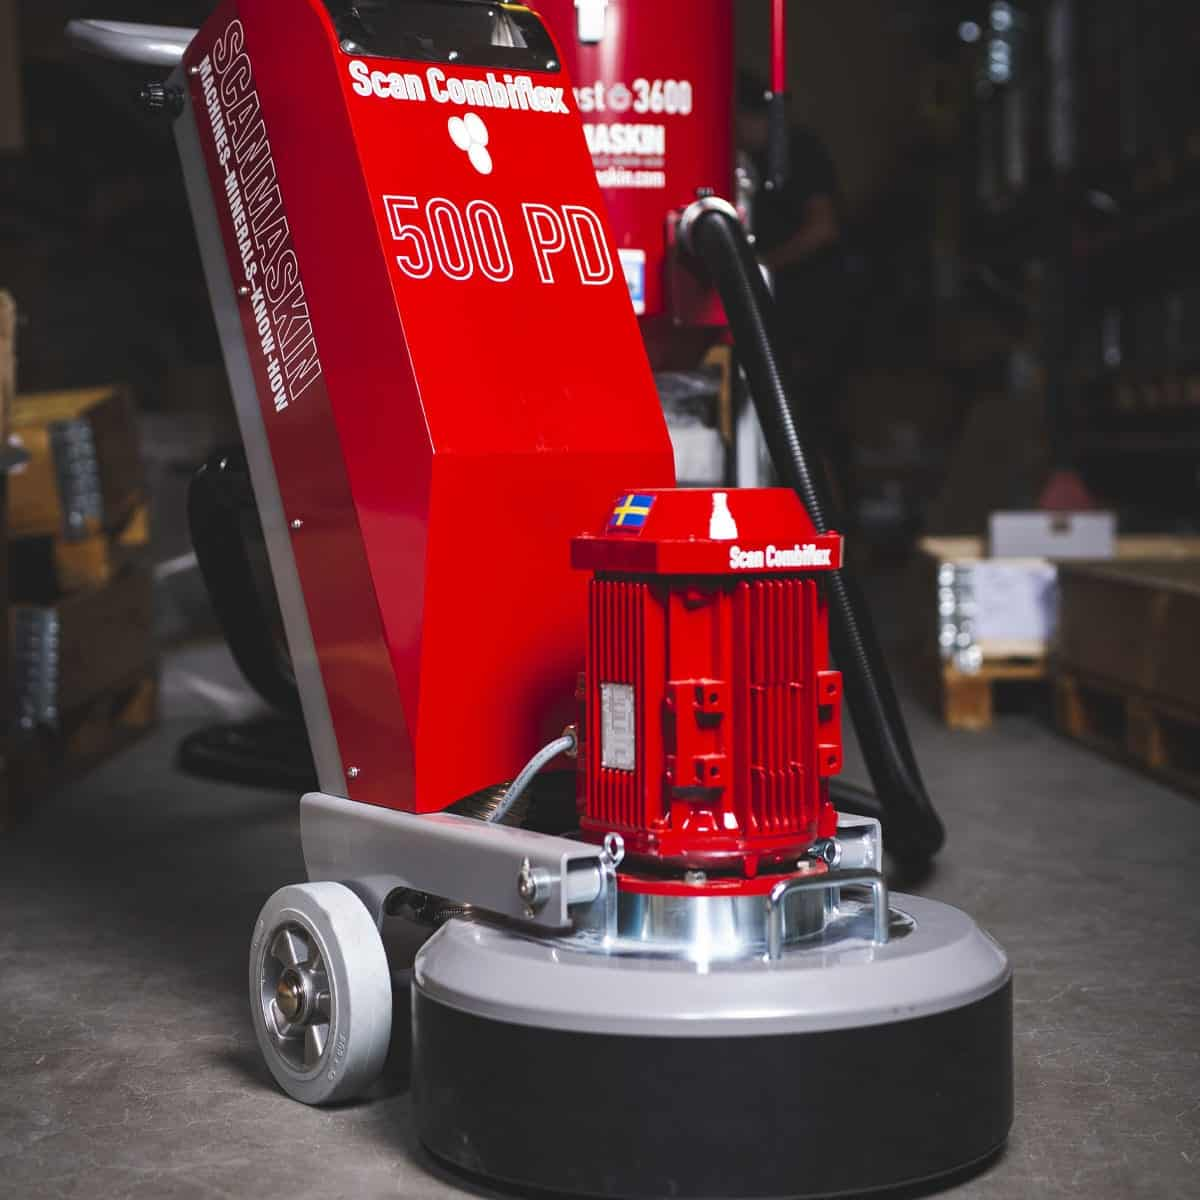 Front Scanmaskin ScanCombiflex 500 PD Concrete Grinder 230 Volt - Turning Point Supply North Carolina Dealer